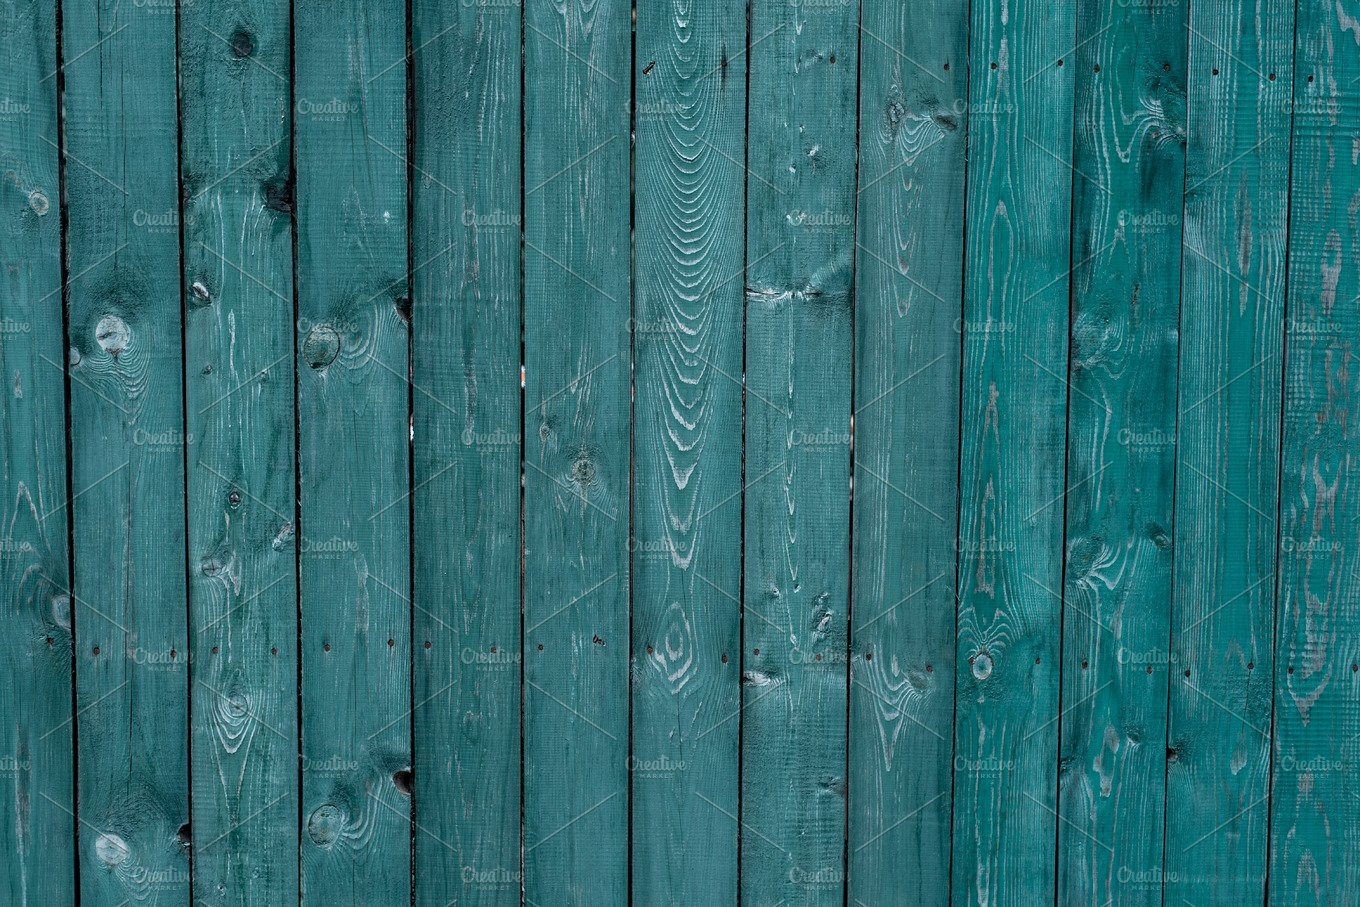 Dark Green Old Wooden Boards Backgrounds And Textures Fence Painted